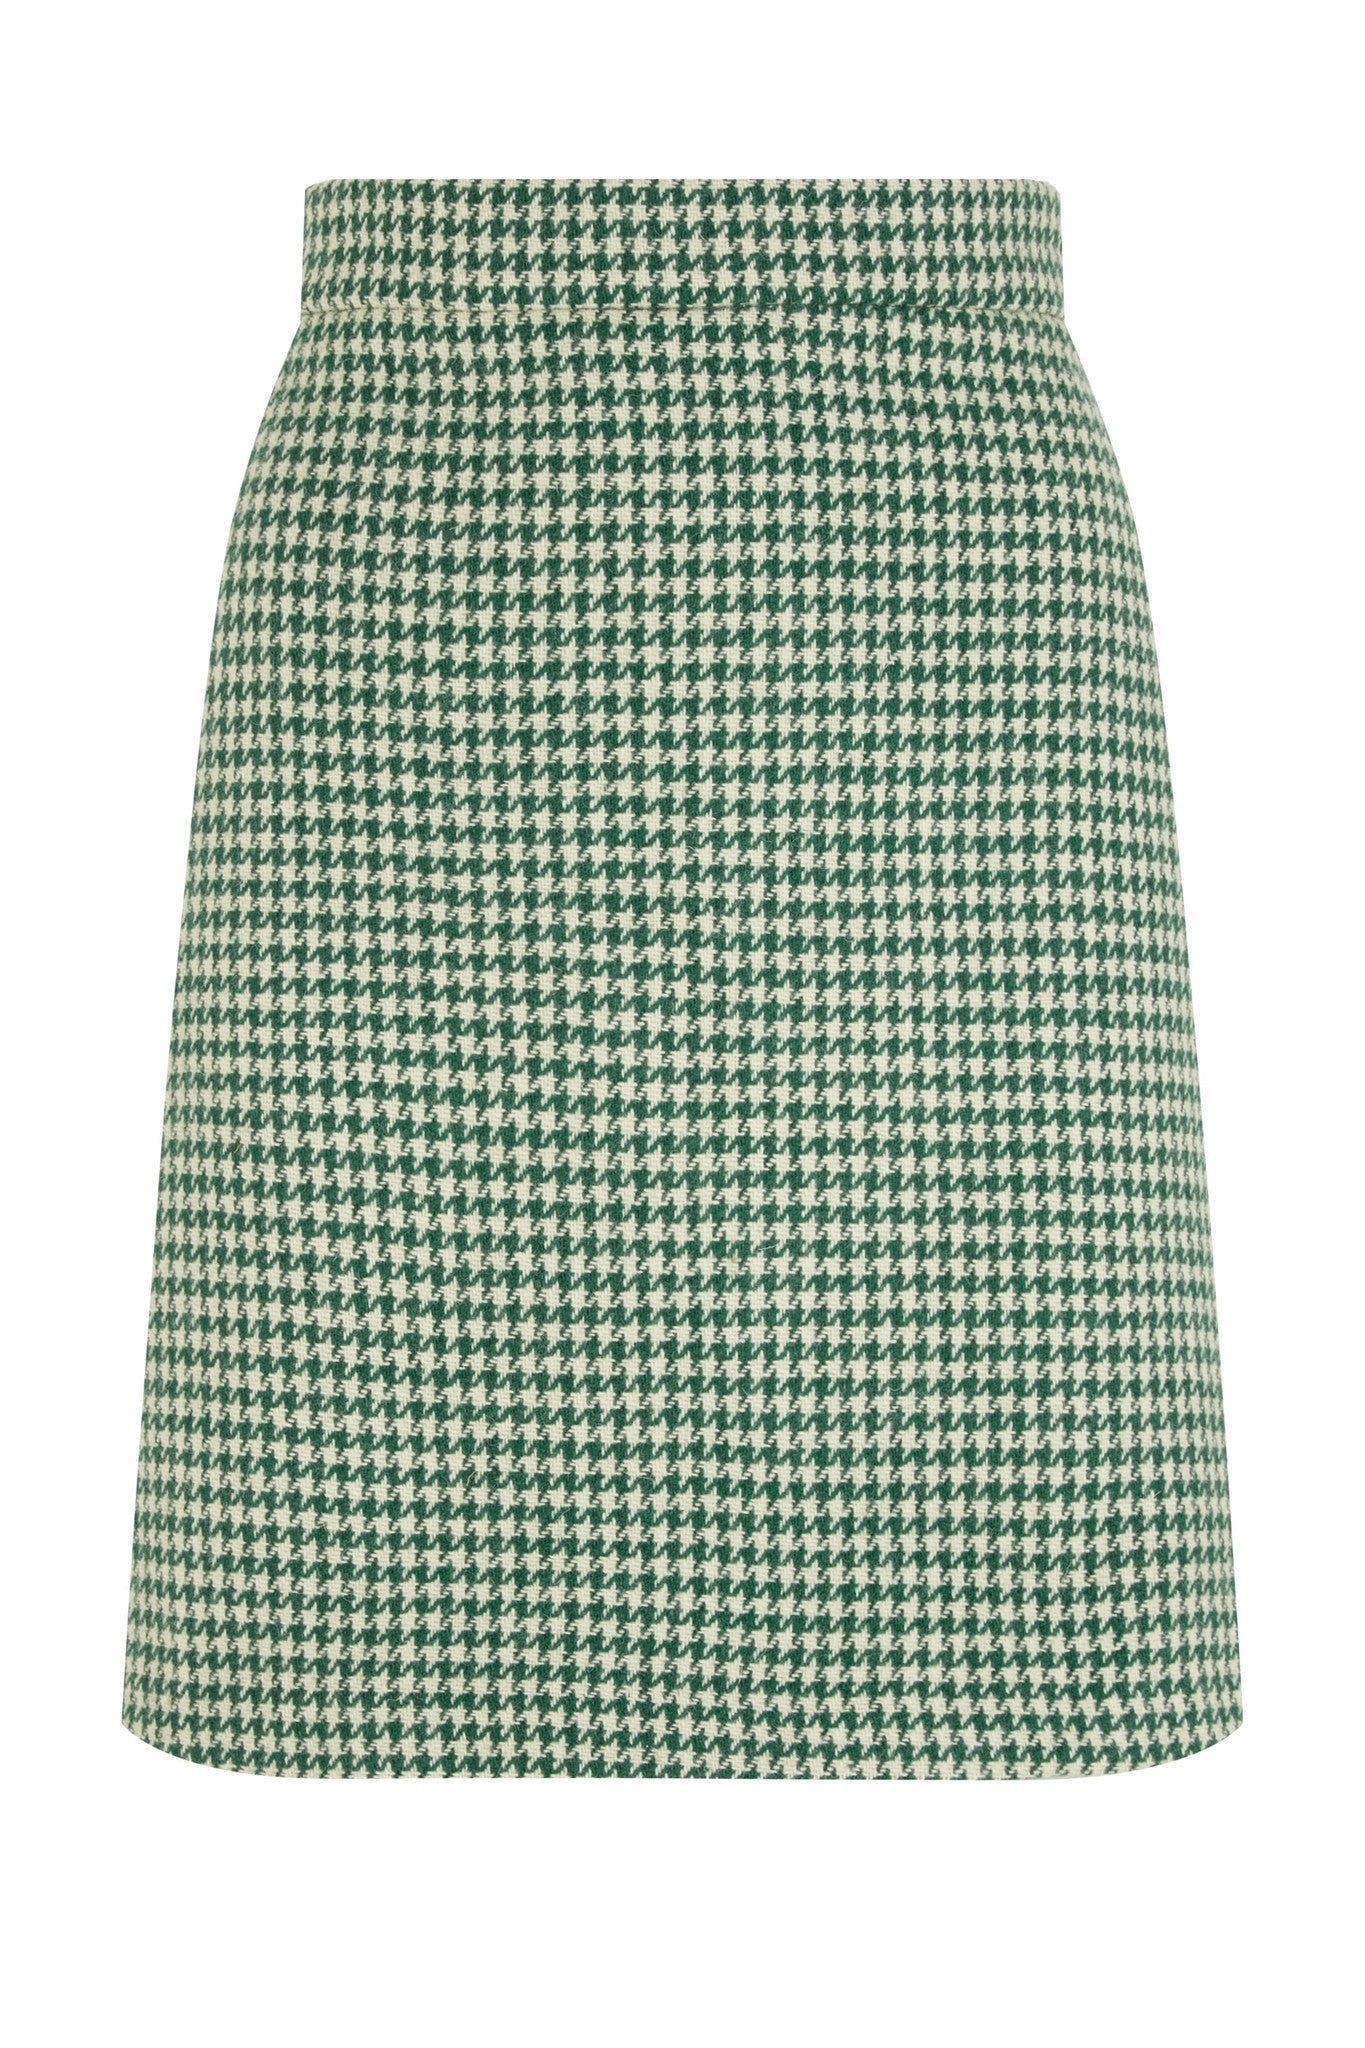 The Mini Skirt - Green Houndstooth